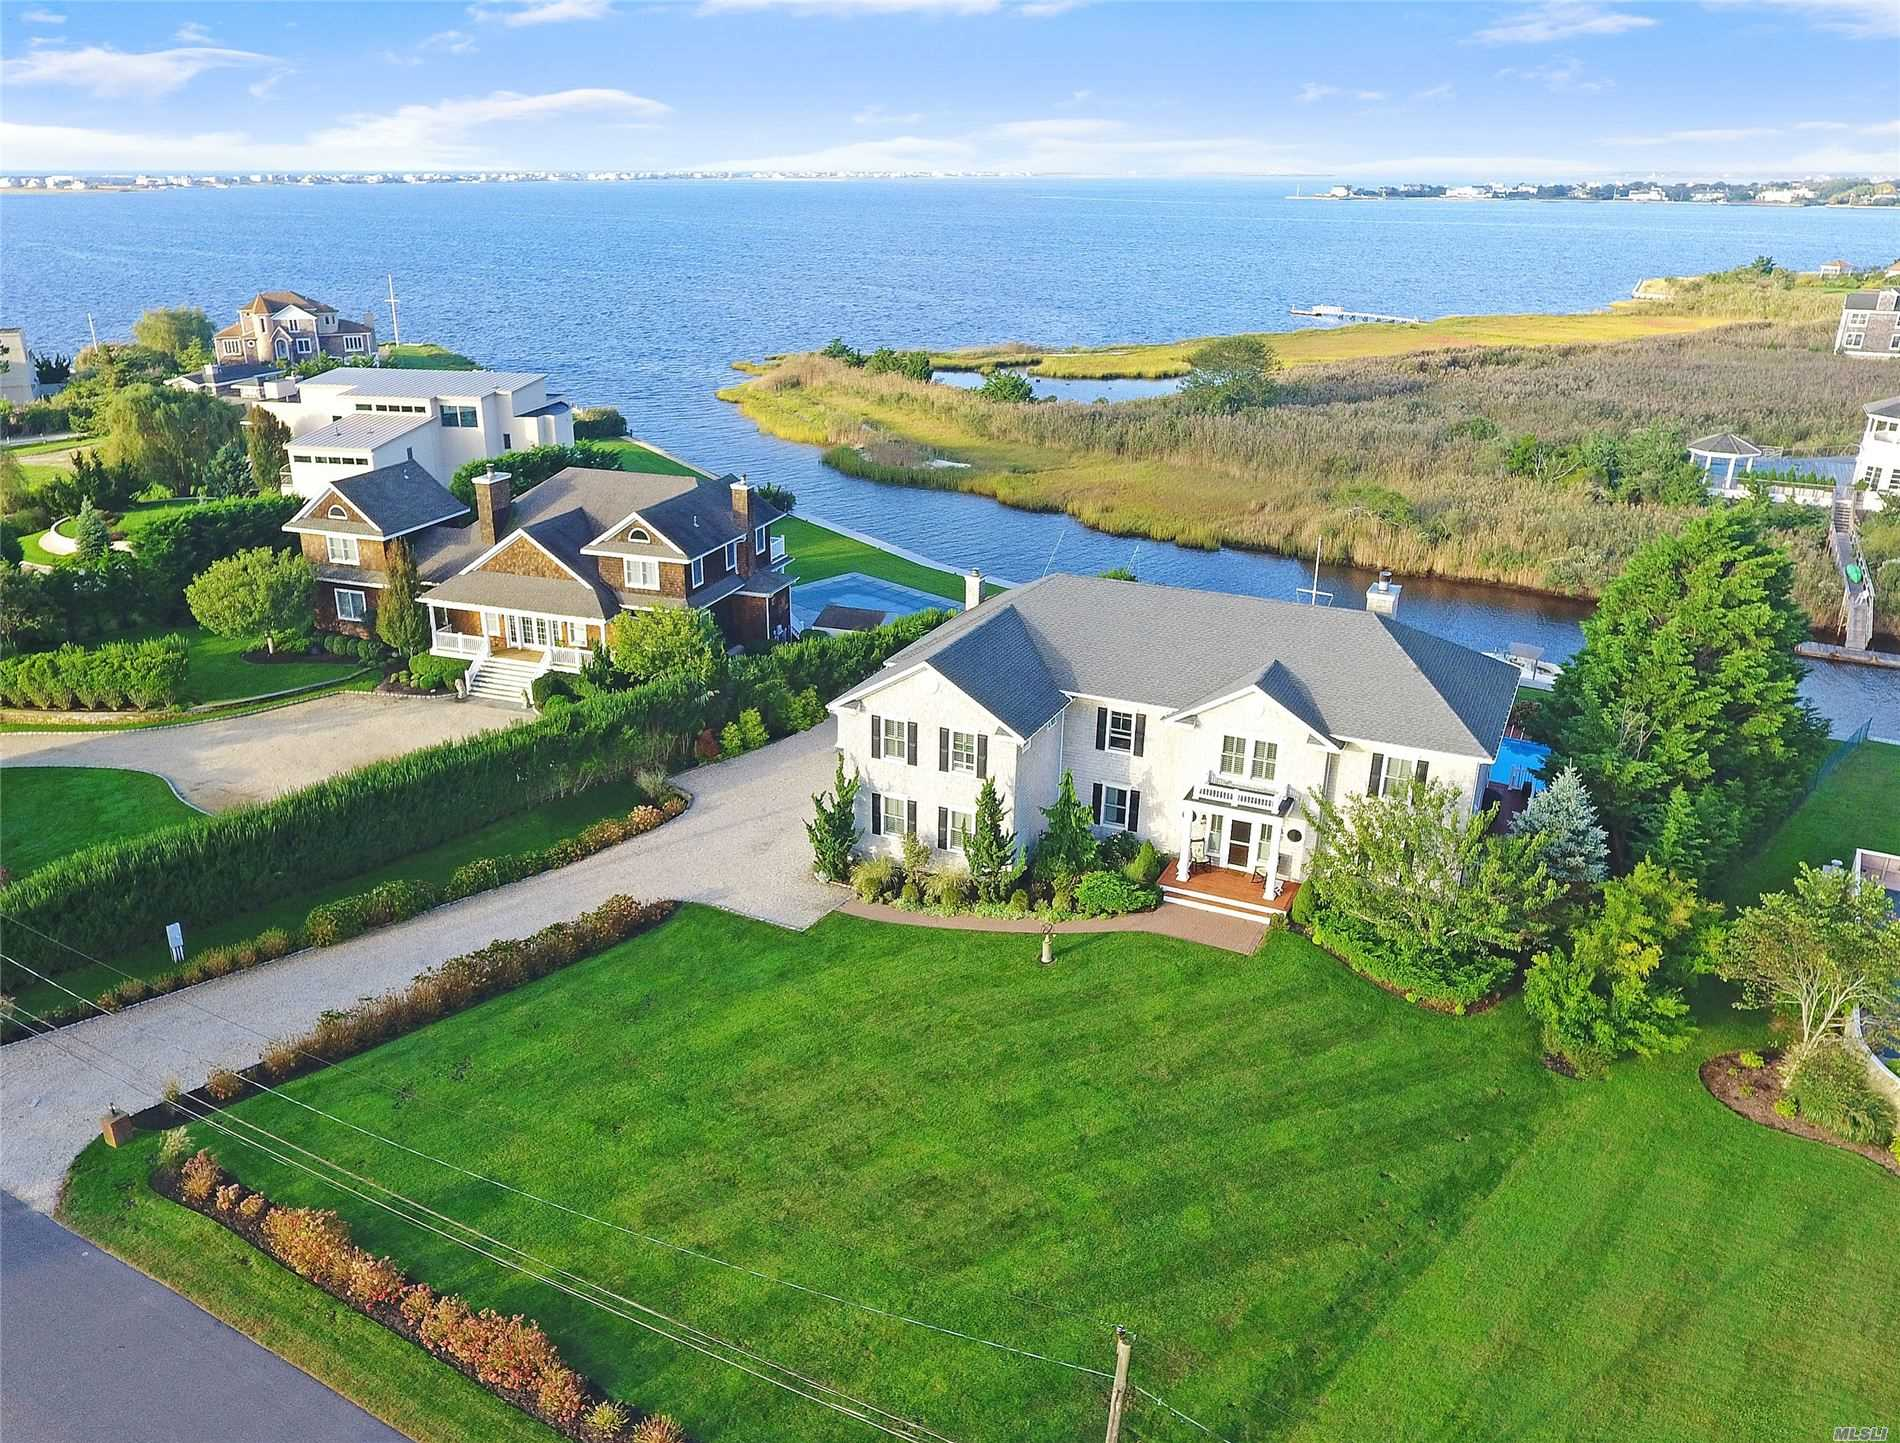 15 Sandpiper Ct - Westhampton, New York